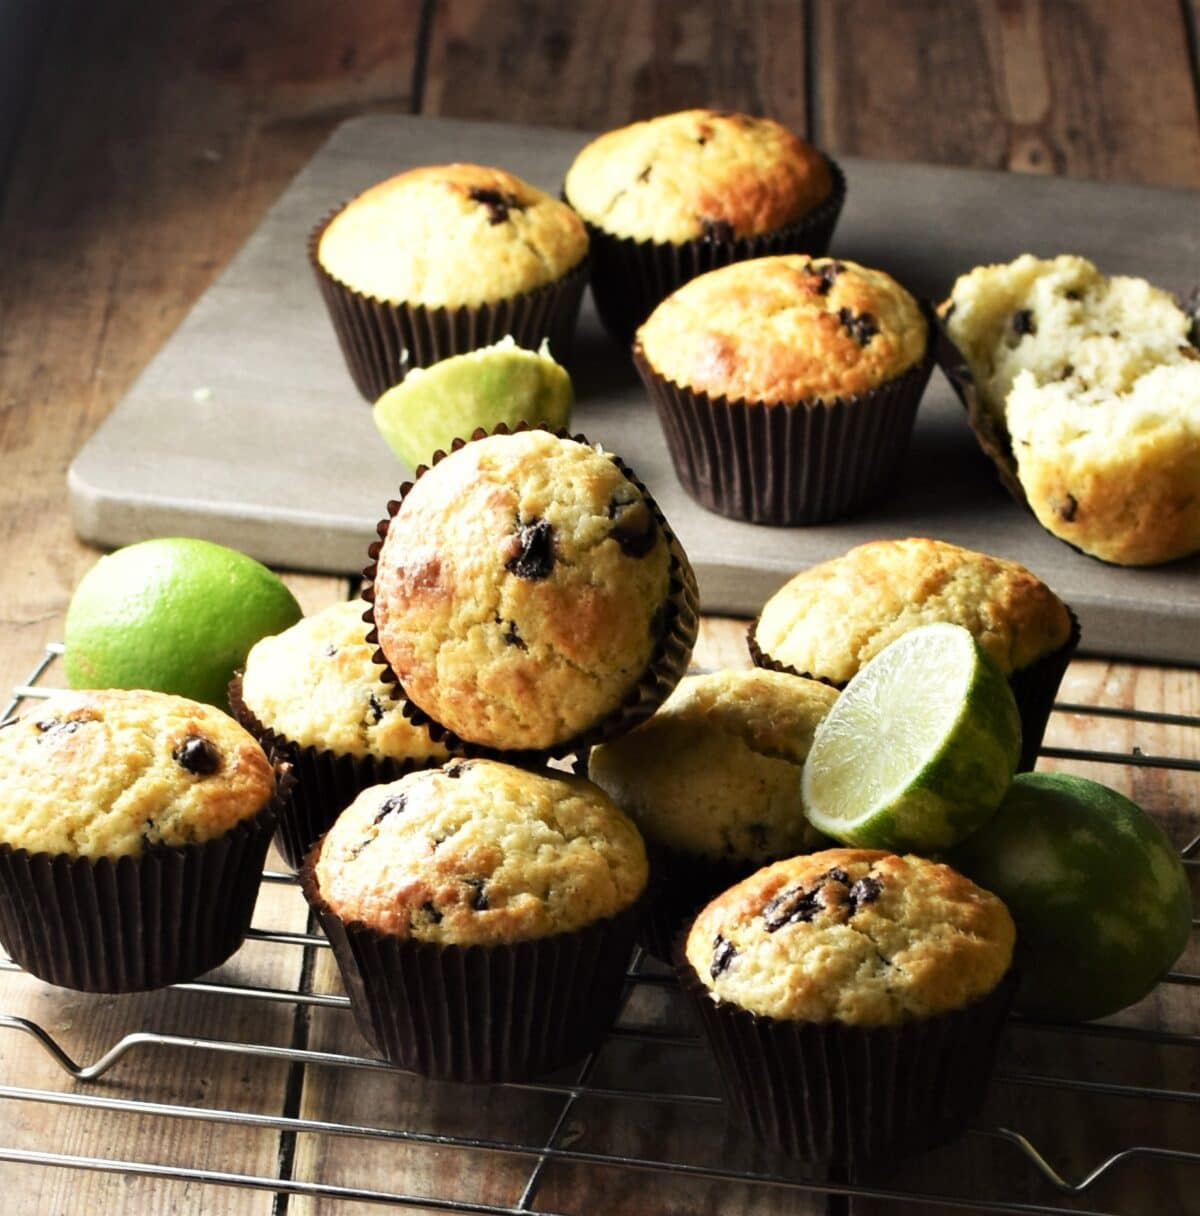 Chocolate chip muffins on rack and grey wooden board with limes.